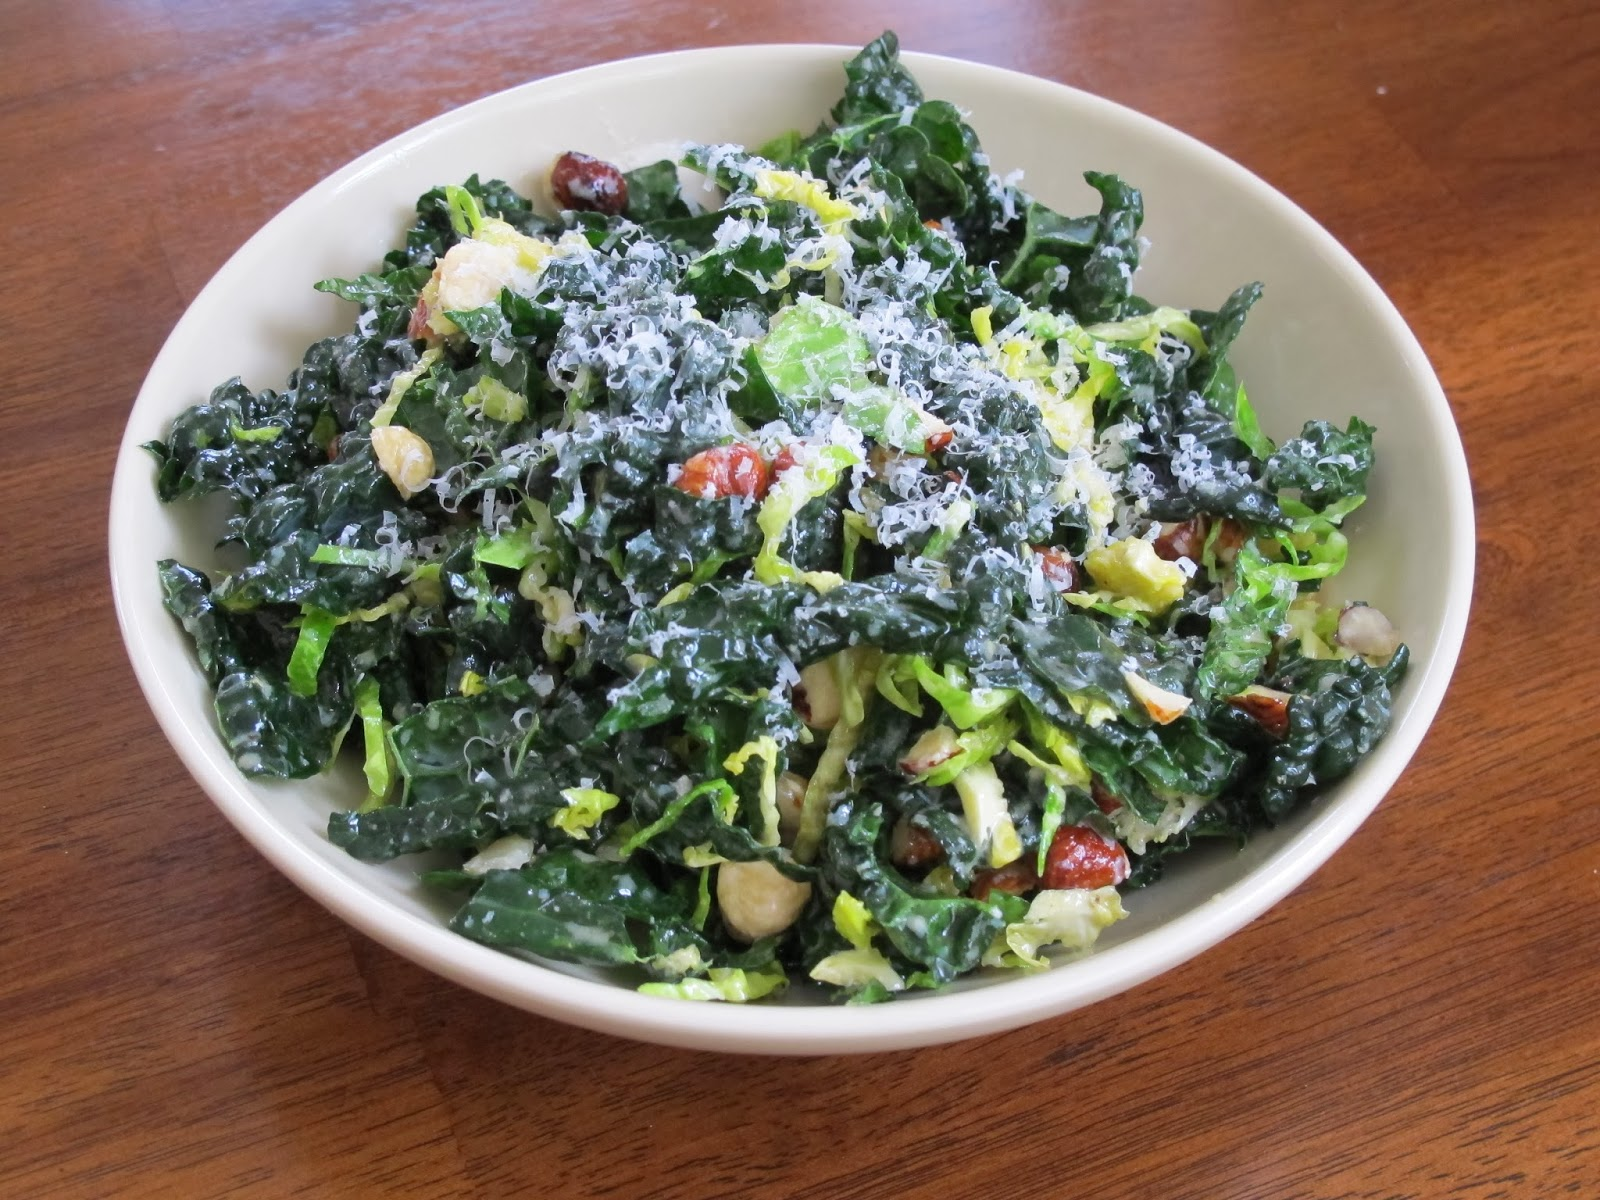 Kale, Brussels Sprout, Hazelnut Salad with Lemon Vinaigrette